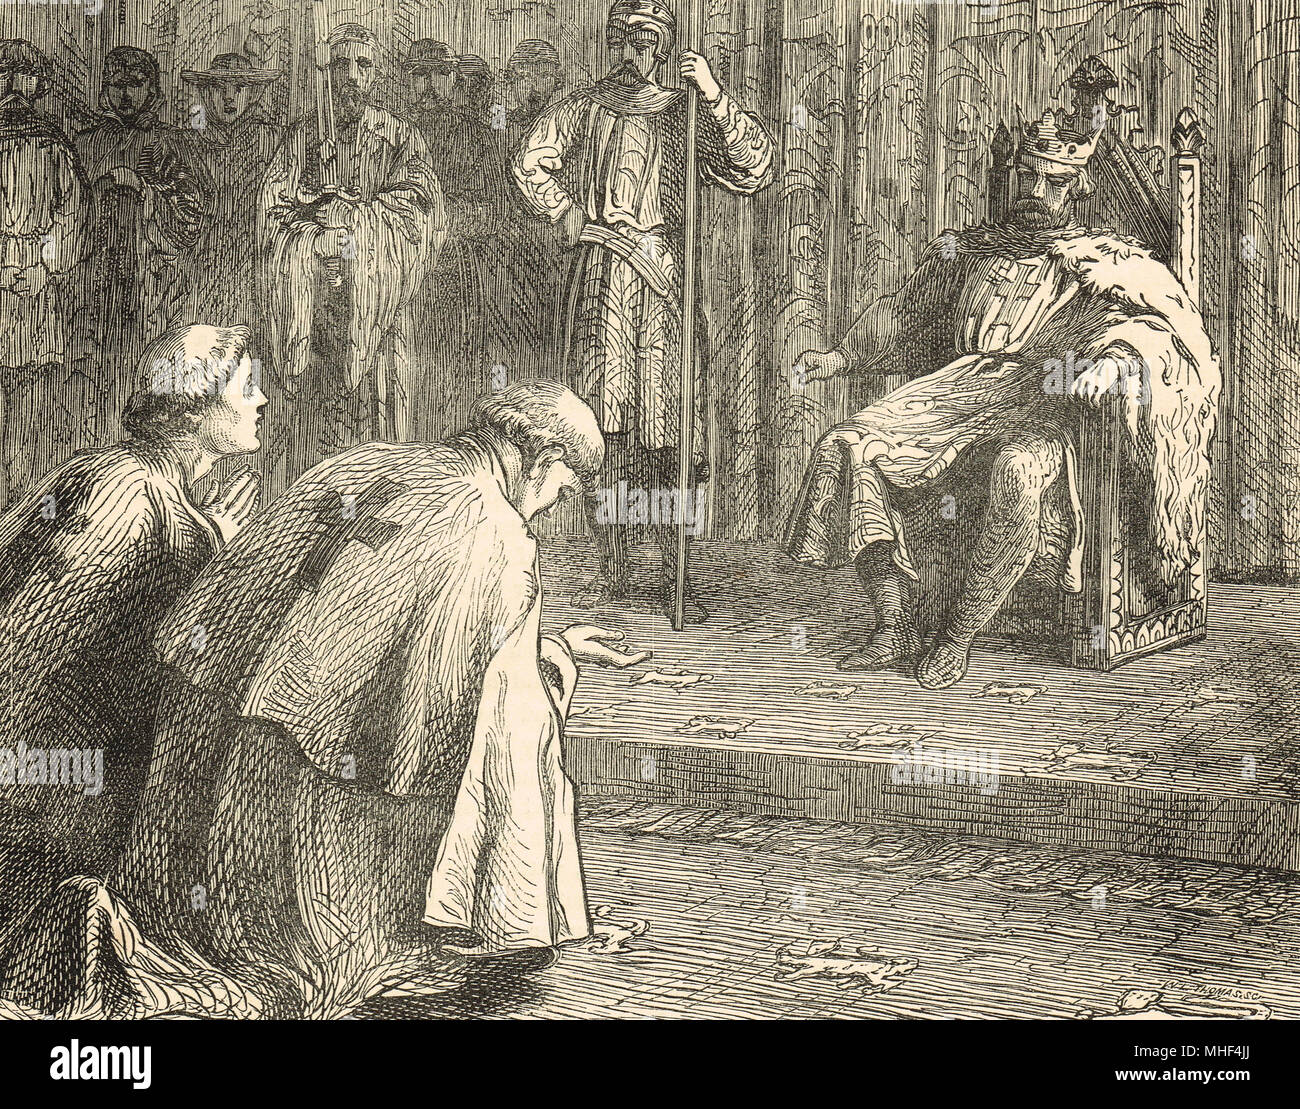 Priests pleading with King Richard I, interceding for the Bishop of Beauvais, Philip of Dreux, captured by Angevin forces. Rouen castle, Normandy, France, 1197 - Stock Image